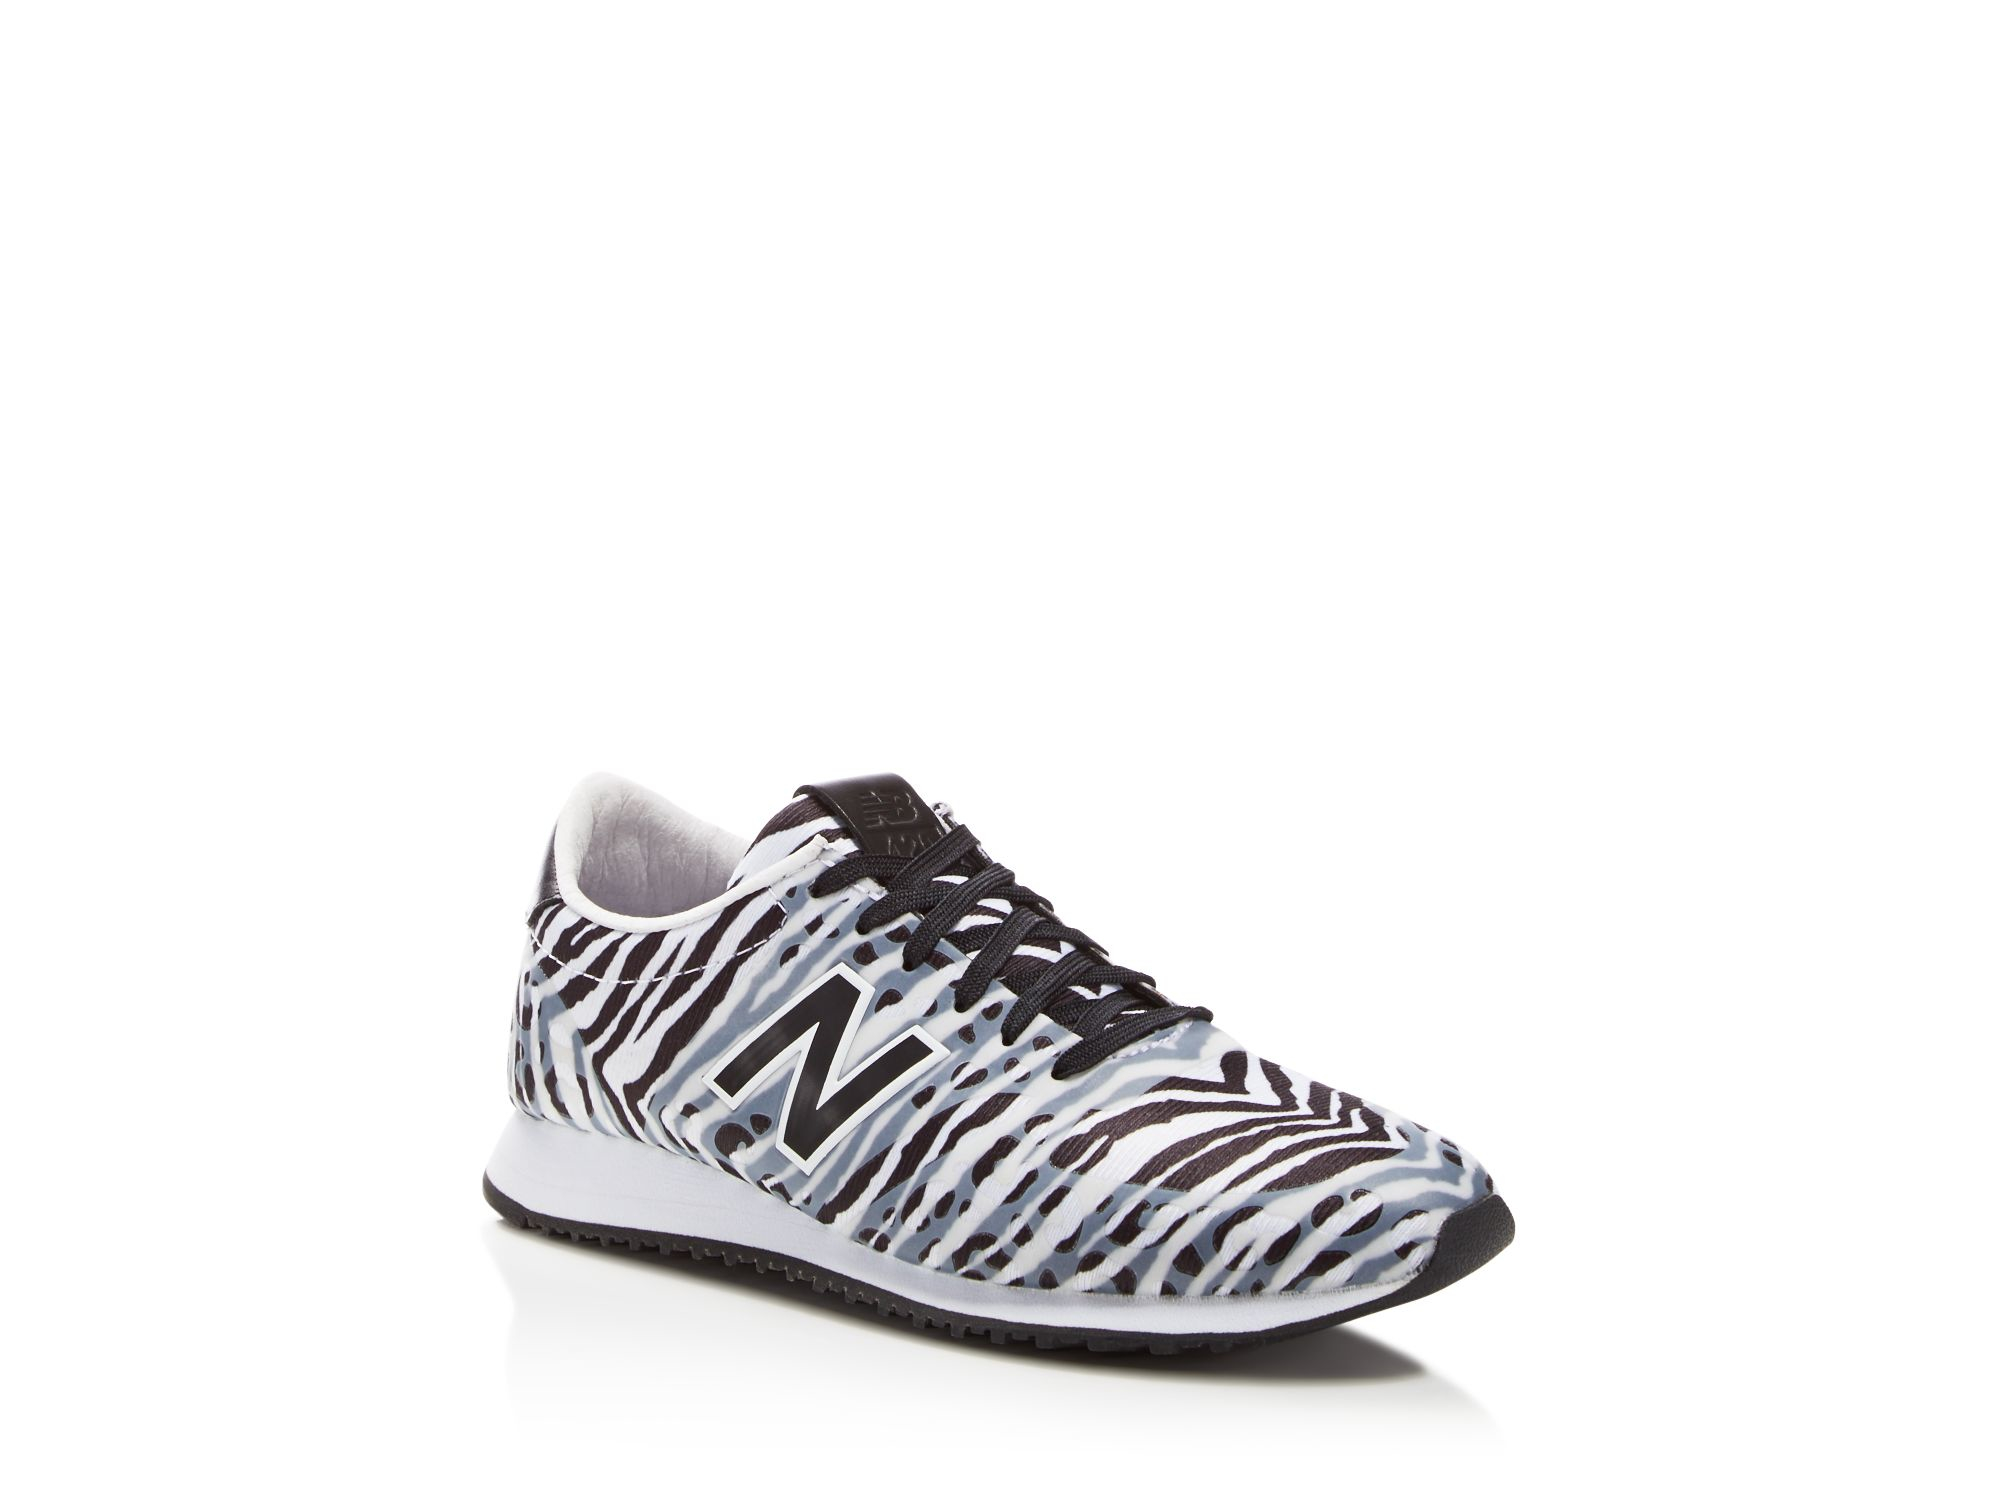 new balance 420 zebra print mesh low top sneakers lyst. Black Bedroom Furniture Sets. Home Design Ideas